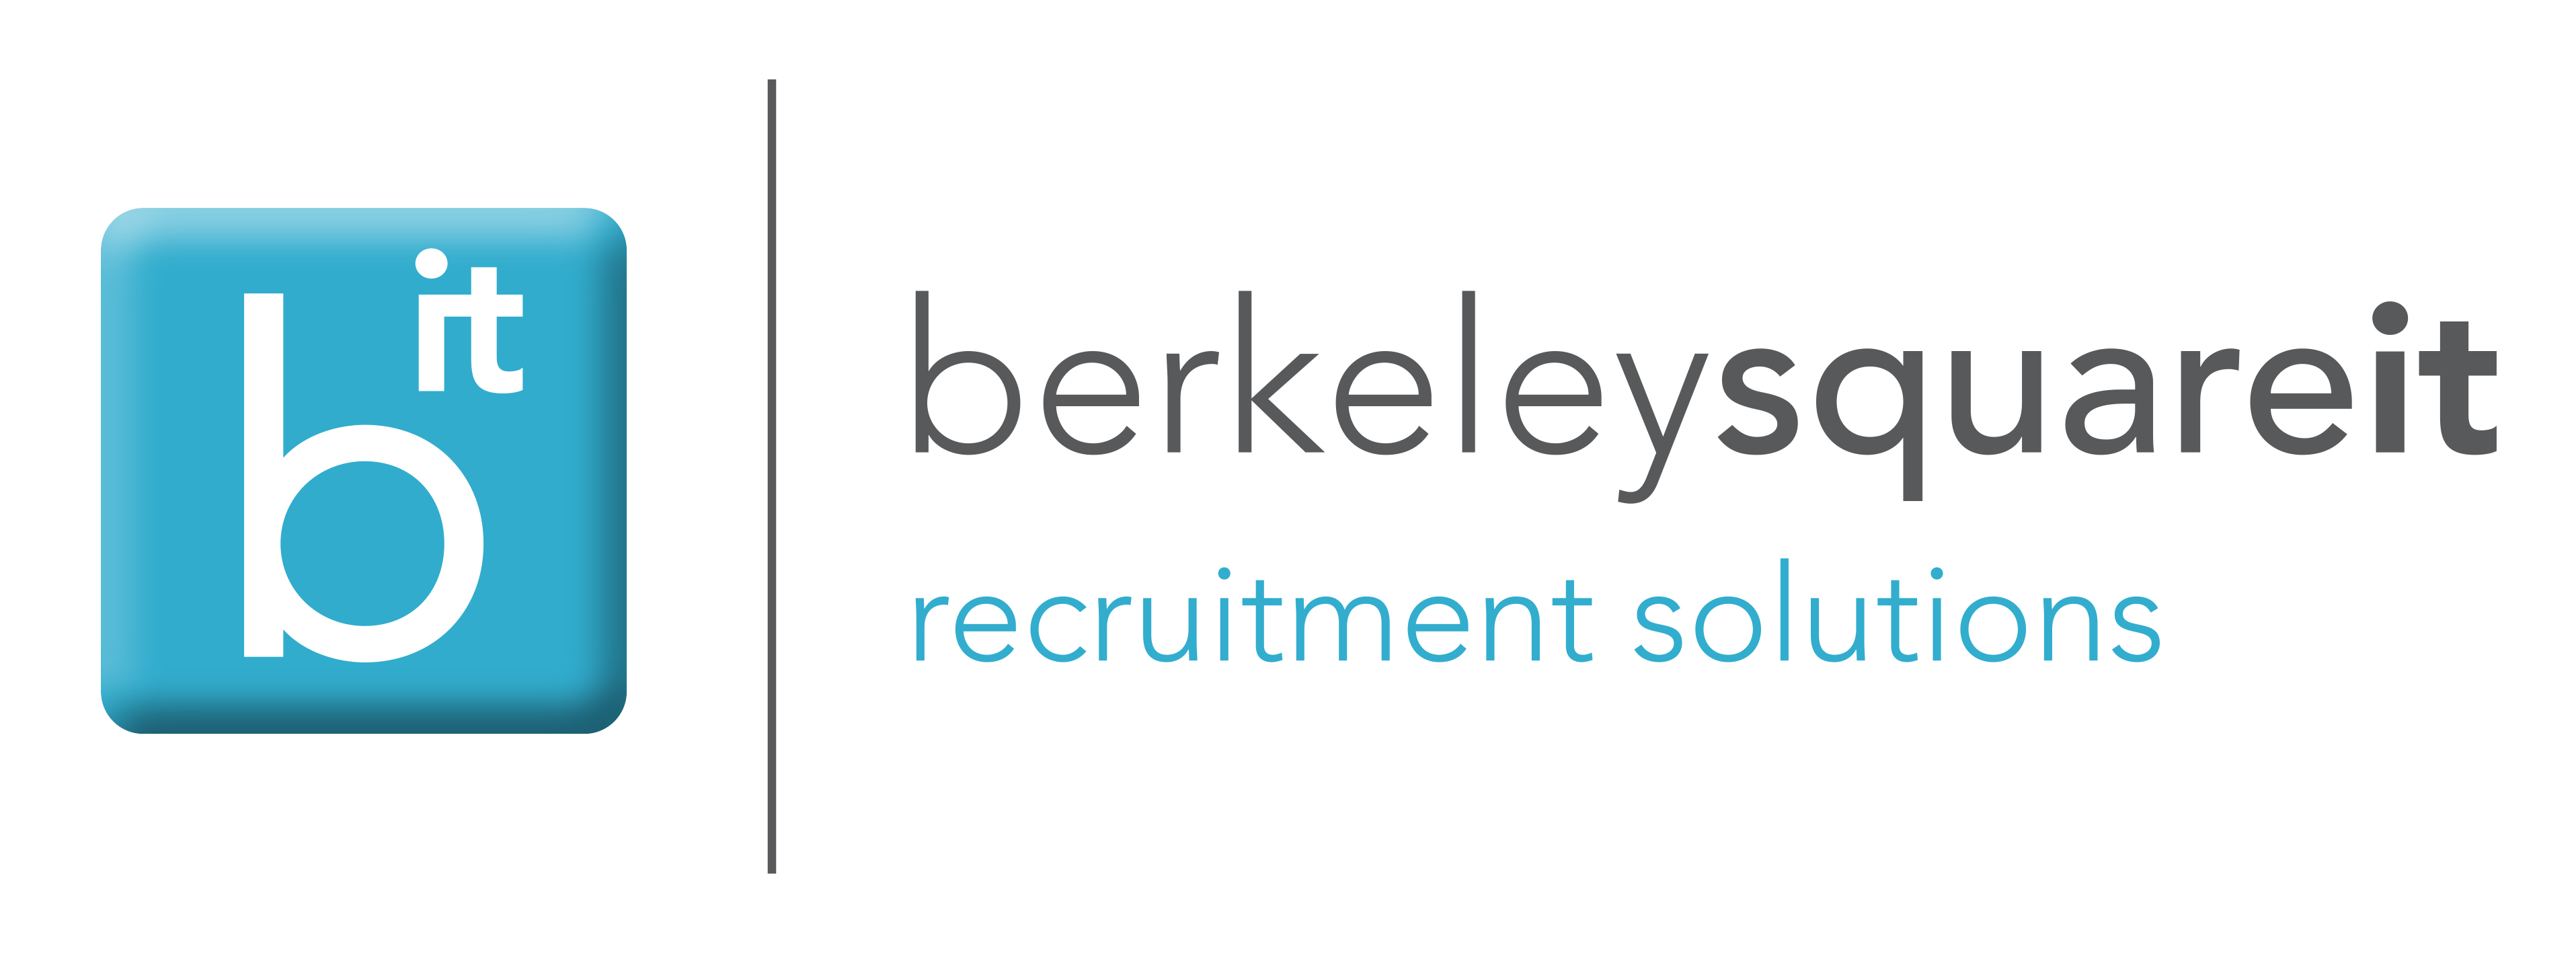 Berkeley Square IT company logo